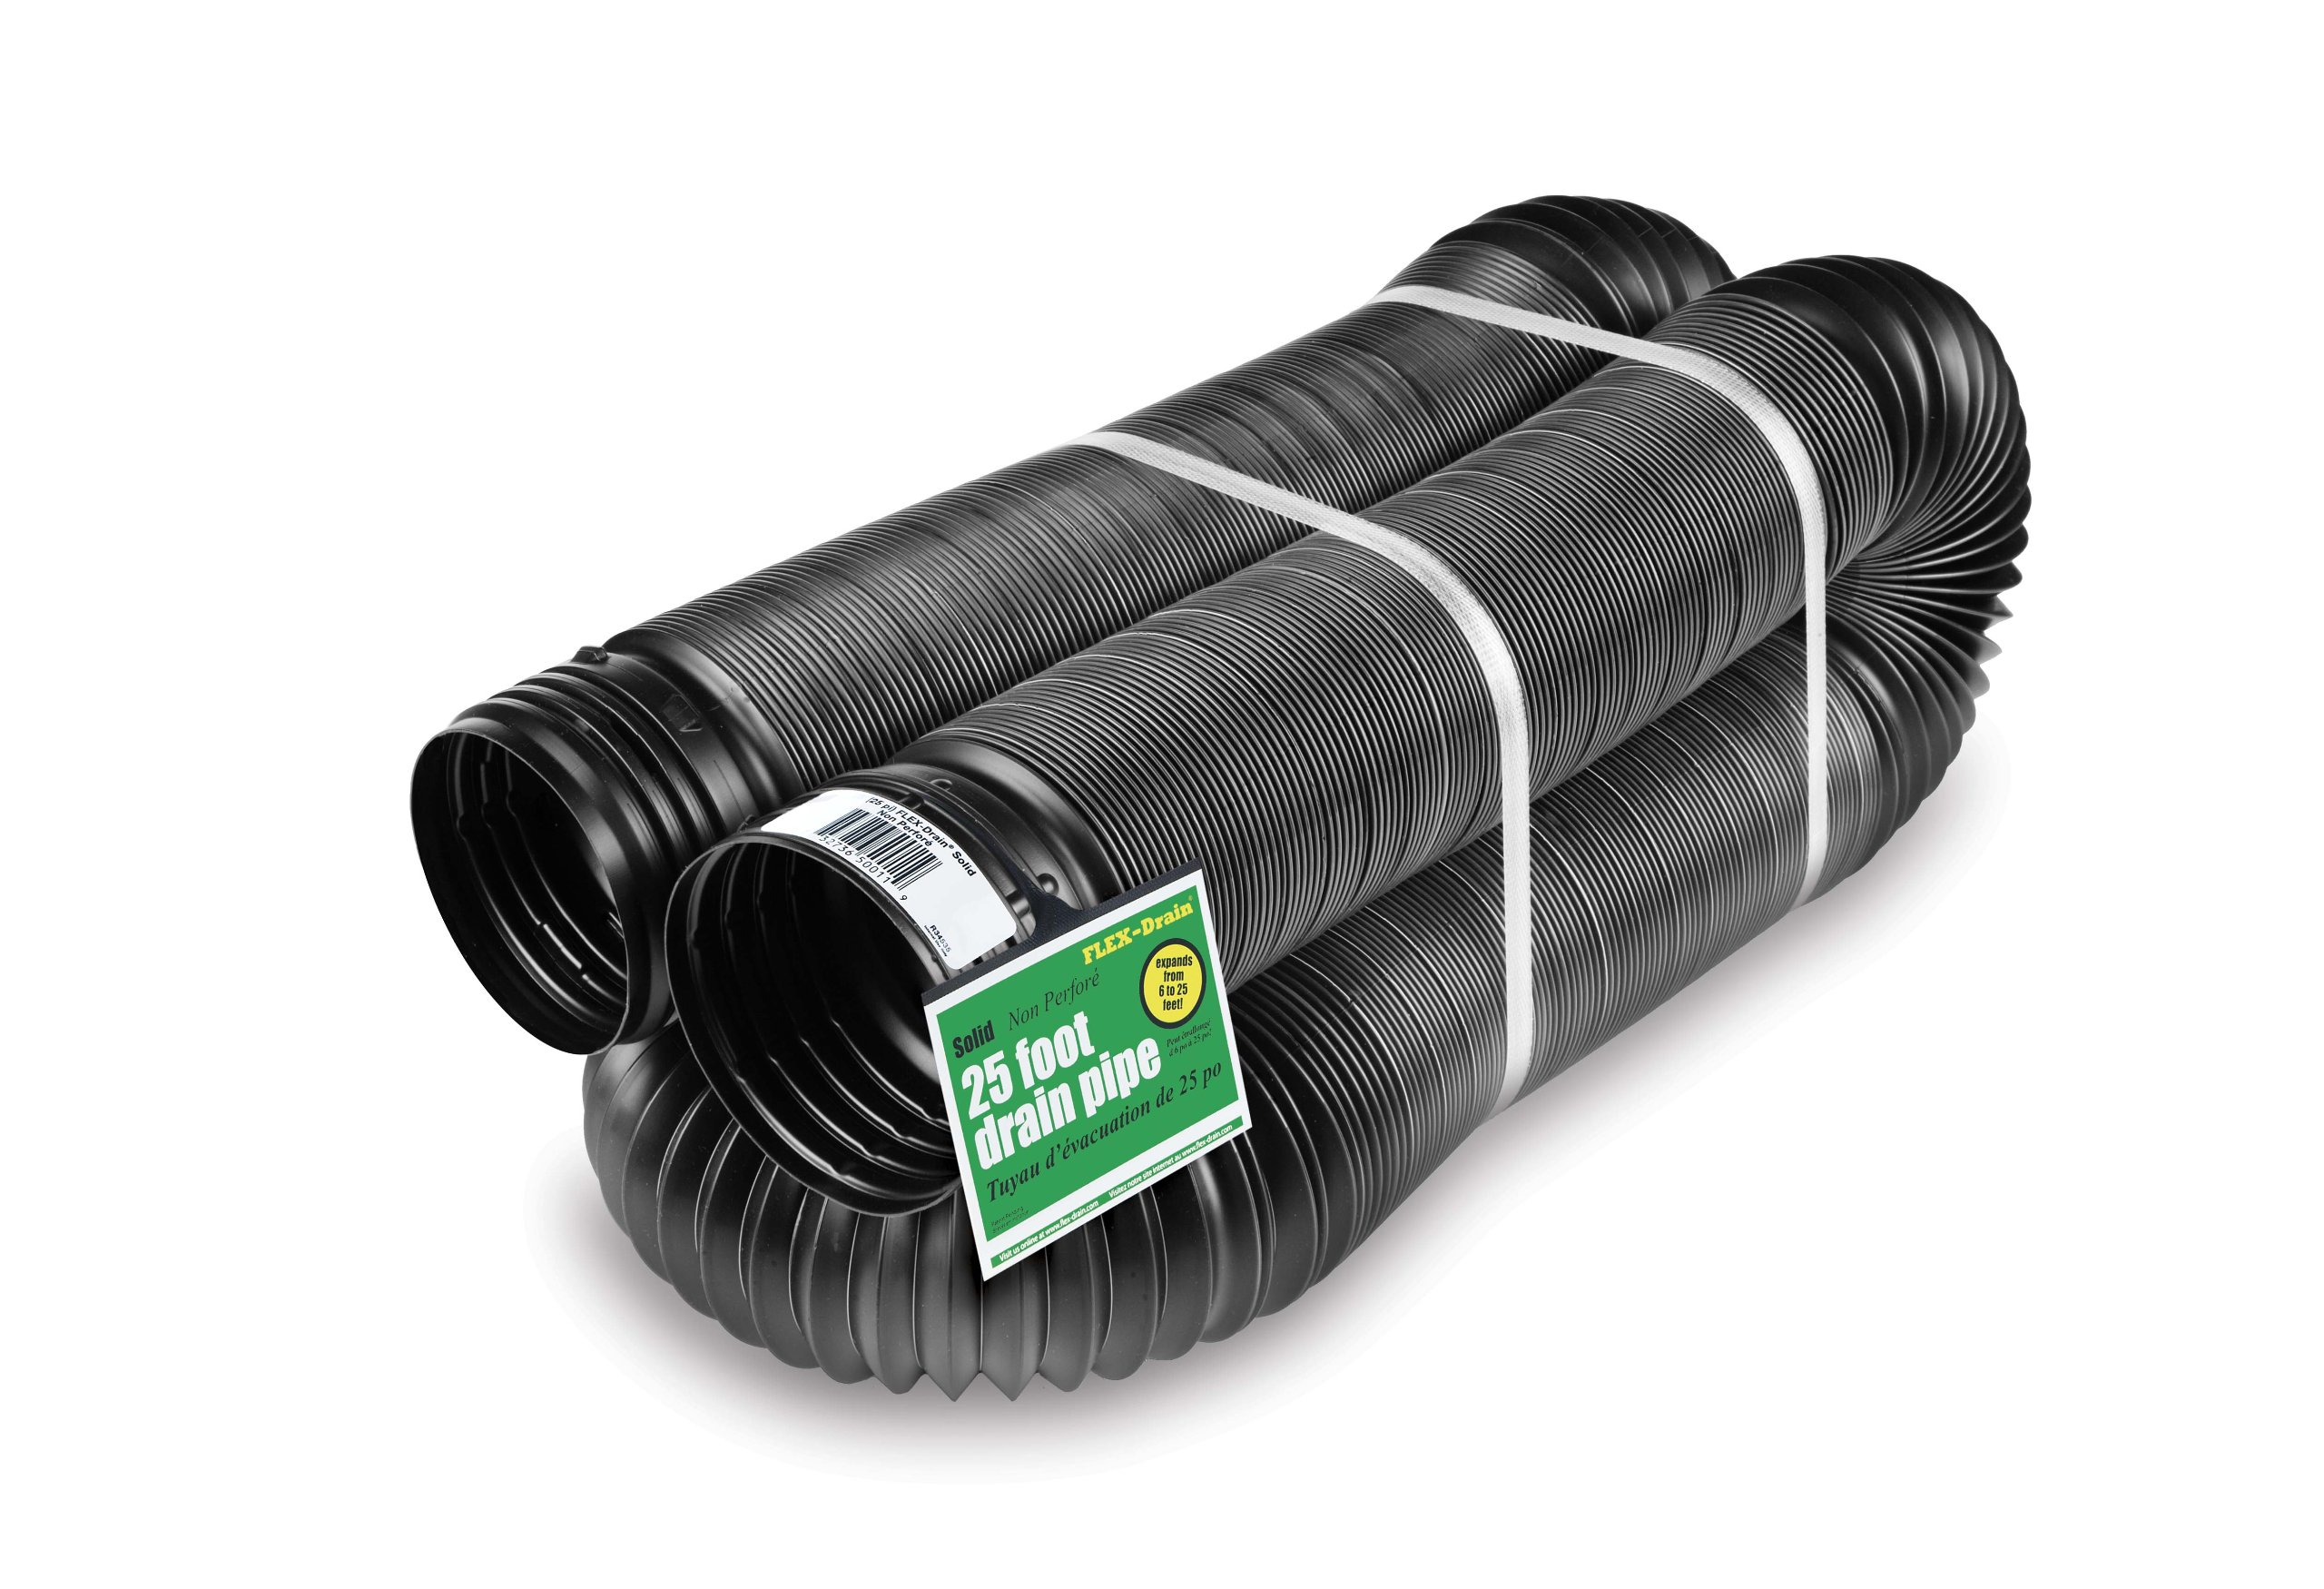 Flex-Drain 51110 Flexible/Expandable Landscaping Drain Pipe, Solid, 4-Inch by 25-Feet by Flex-Drain